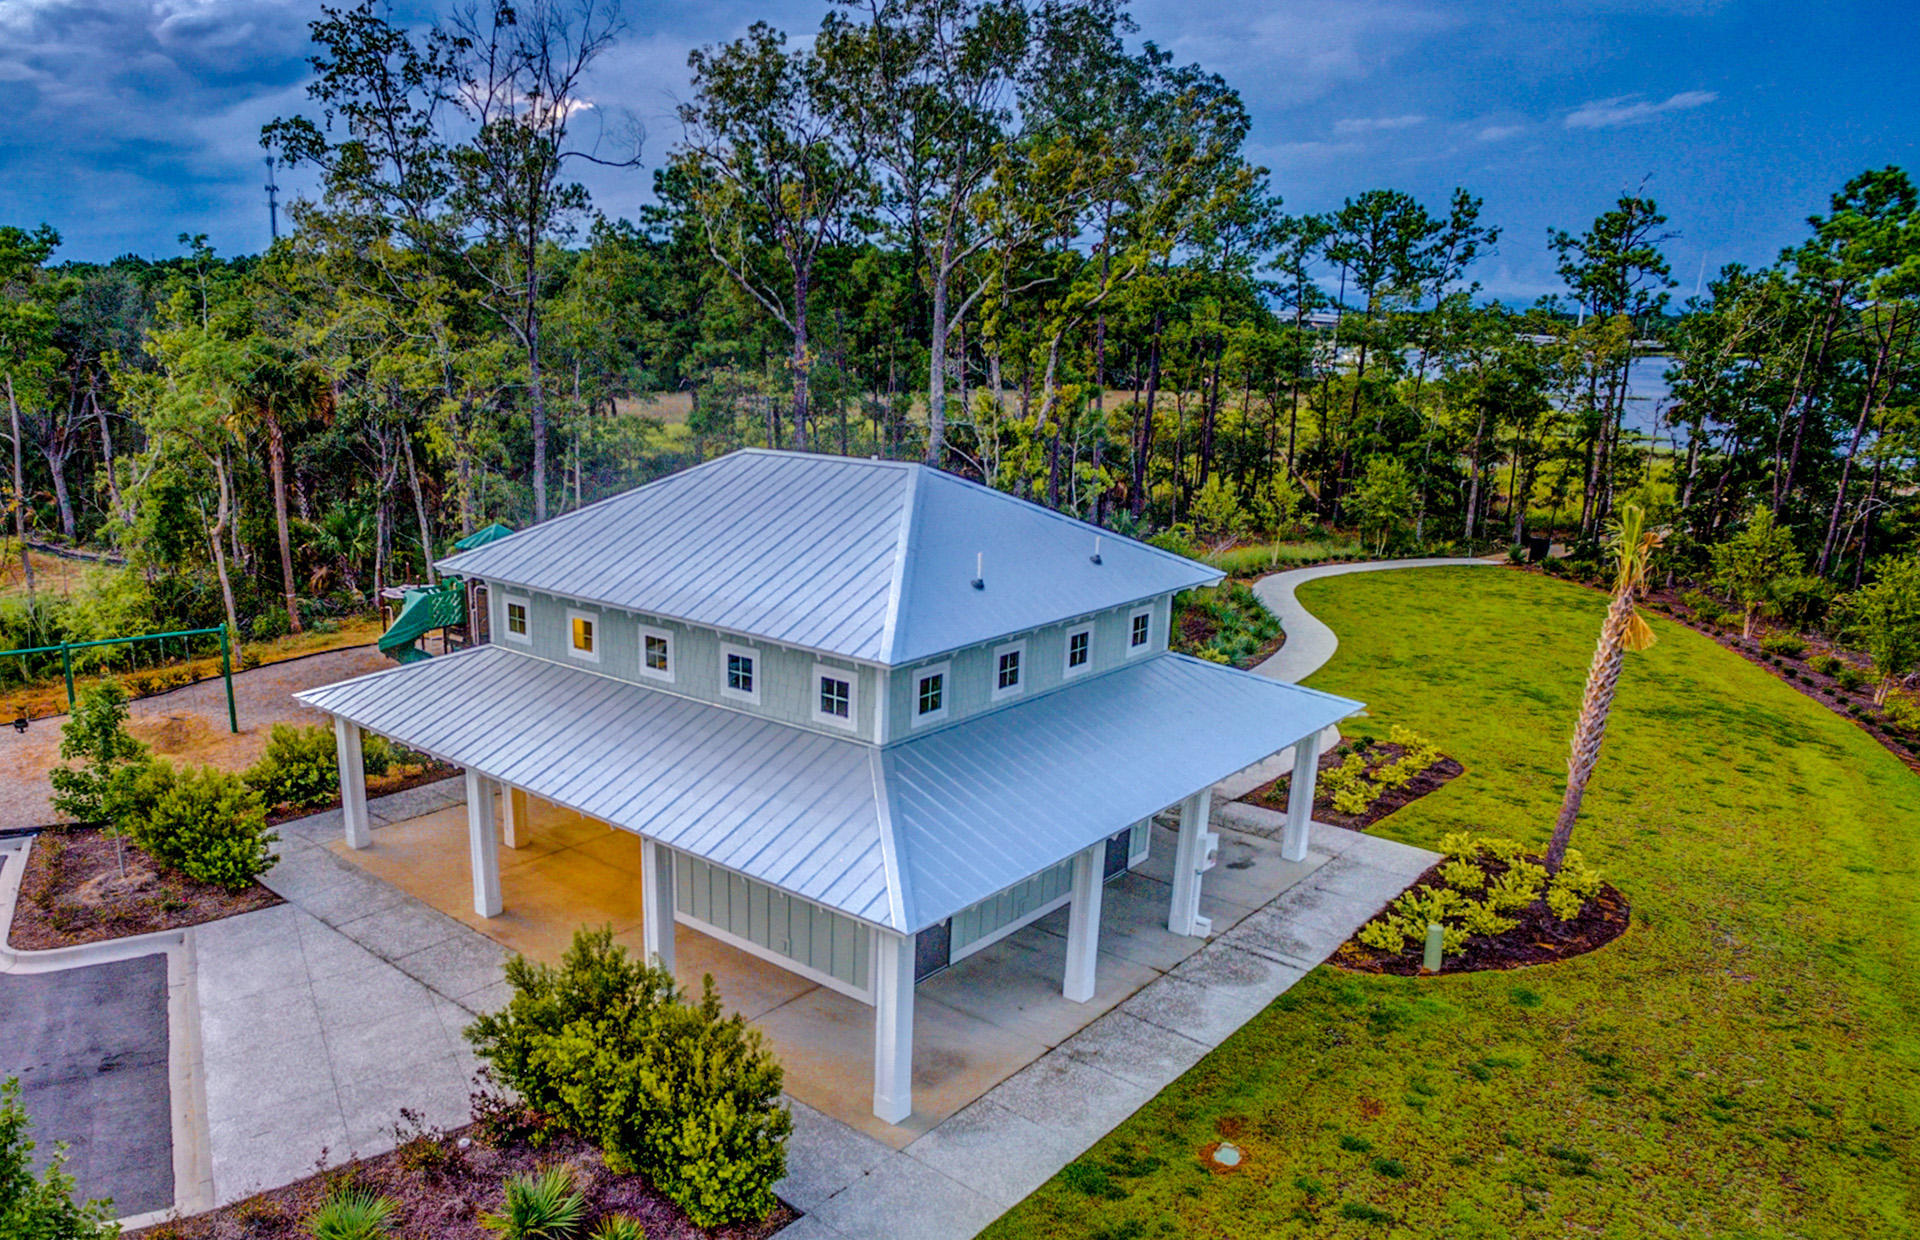 Dunes West Homes For Sale - 2846 Dragonfly, Mount Pleasant, SC - 1